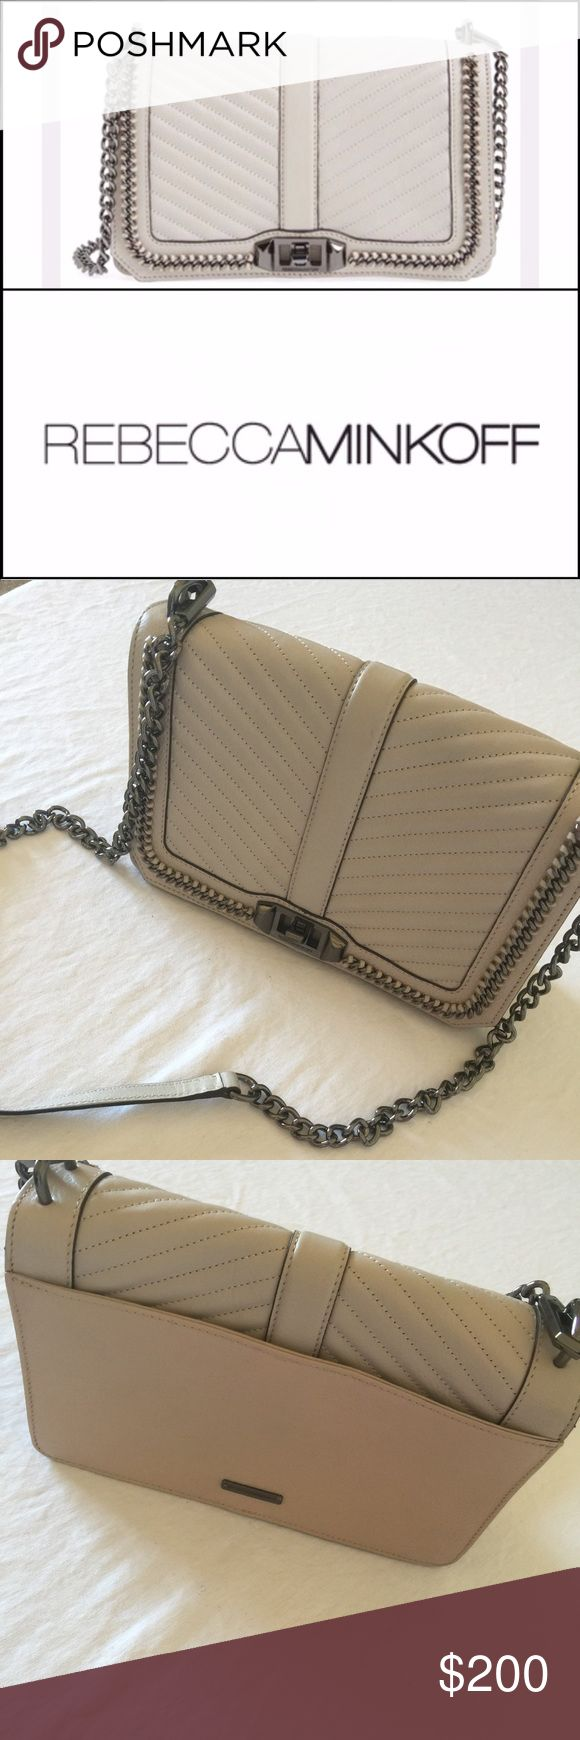 Rebecca minkoff, nwot, chevron quilted, ❤️crosbdy Rebecca minkoffs, popular...love crossbody bag in cemento color with gunmetal hardware, nwot. This bag was window display, and never worn. still has rebecca  minkoff care card, inside, handbag. season code written inside zipper pouch, not visible when purse is open. there is slight discoloration, as pictured, on back panel that lies against body, not facing out. no trades or lowball offers please. let me know if u want addnl photos. Rebecca…